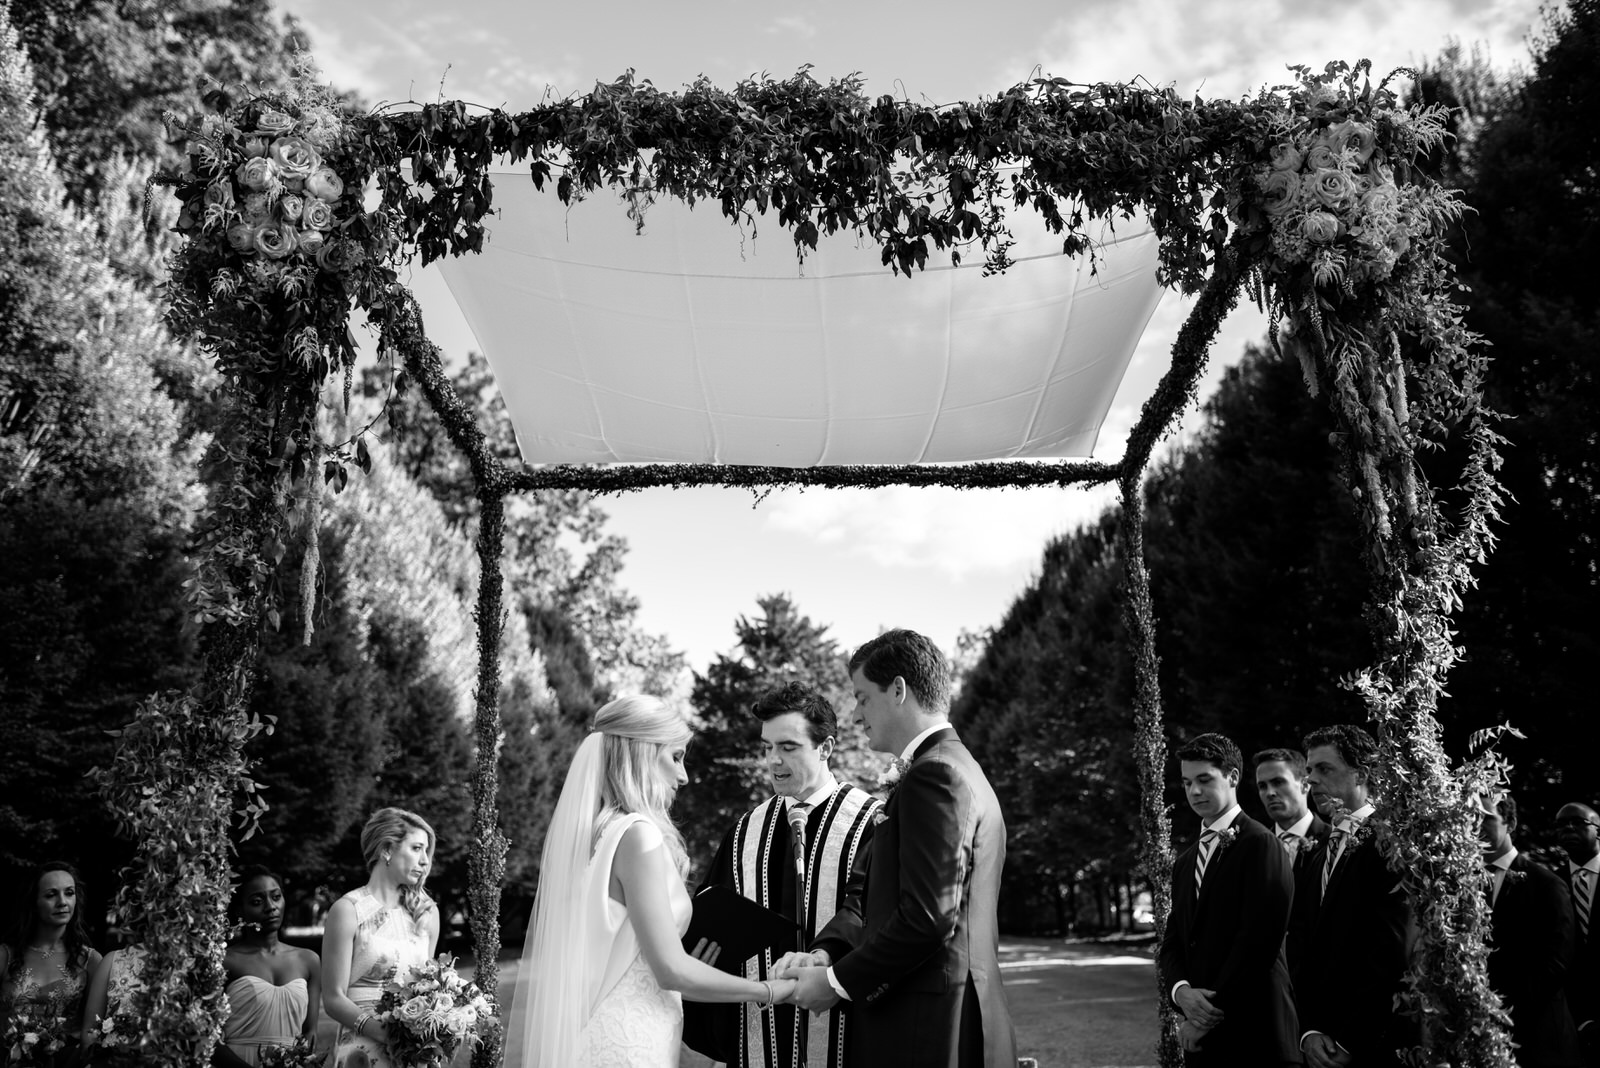 Elegant english Garden Wedding in Ligonier, Pennsylvania country club